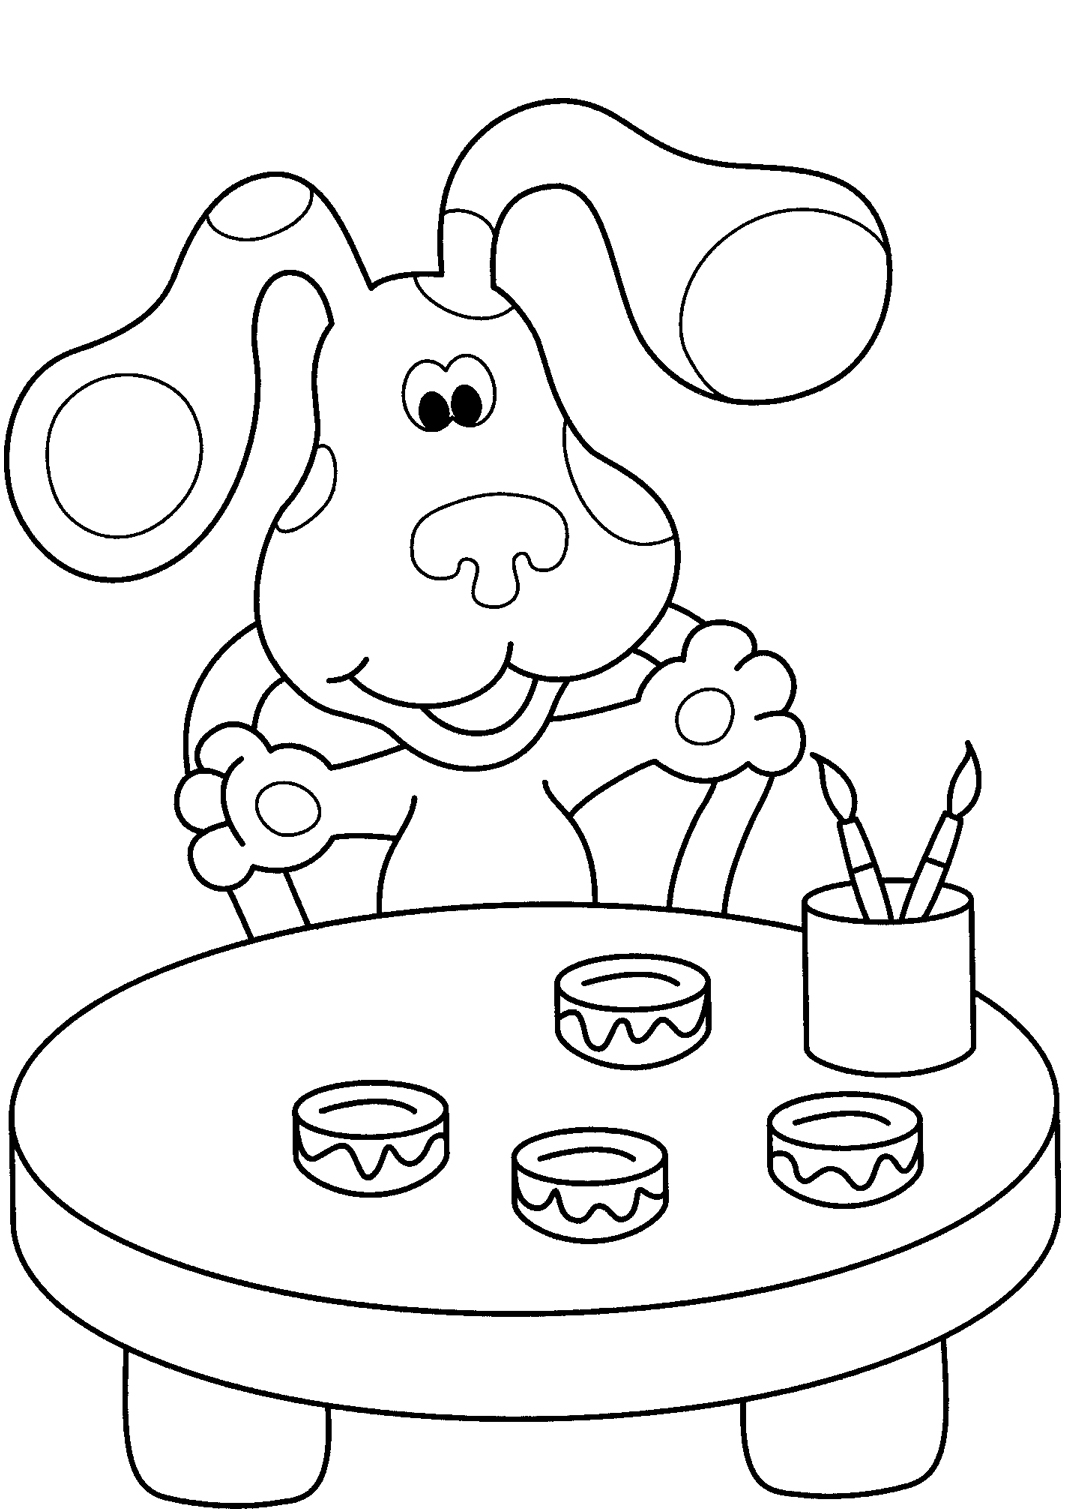 blues clues thanksgiving coloring pages - photo#5